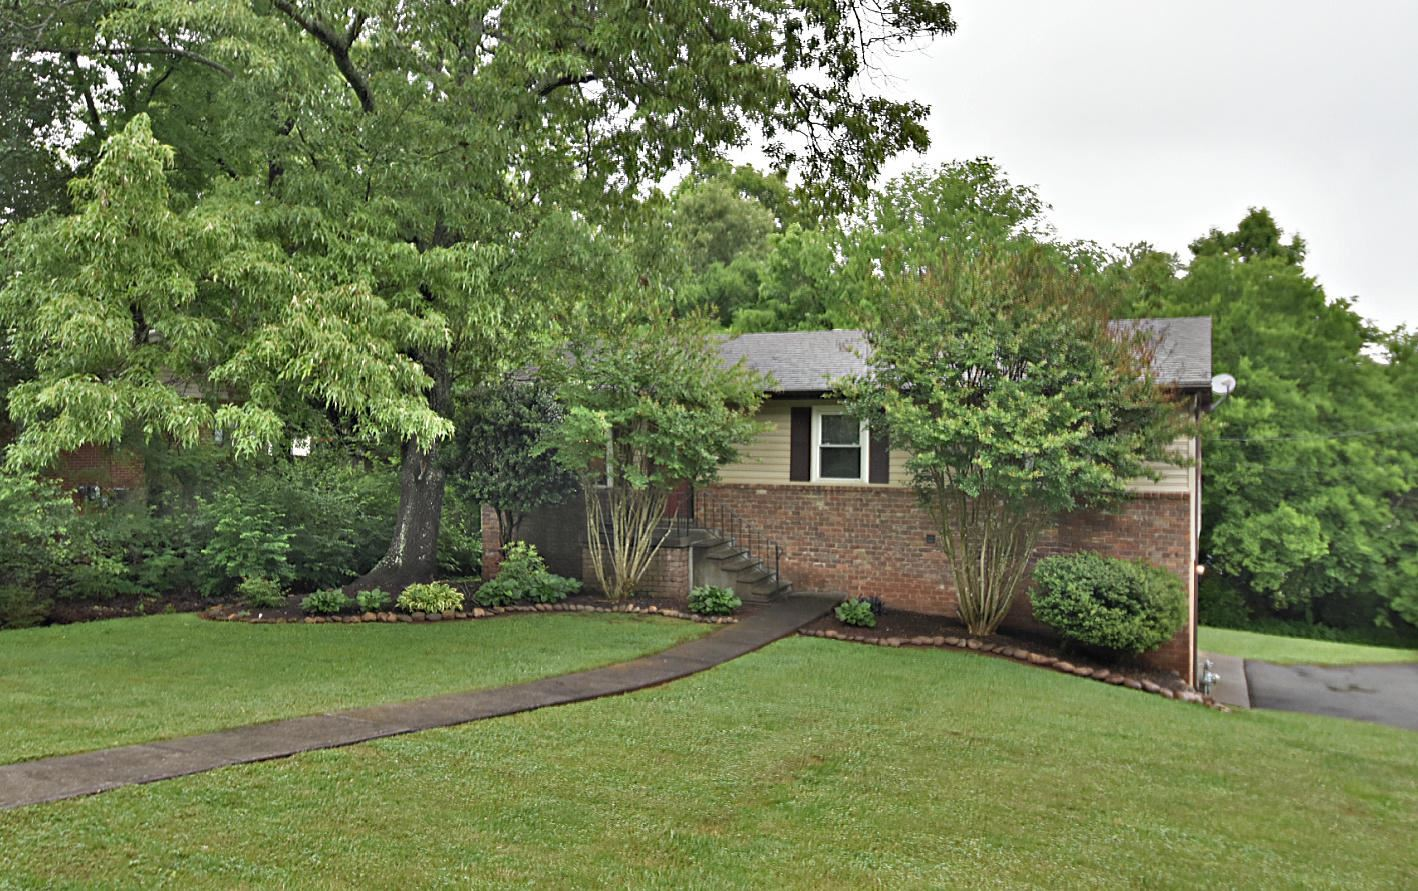 Photo of 419 Biltmore Drive, Maryville, TN 37801 (MLS # 1153351)